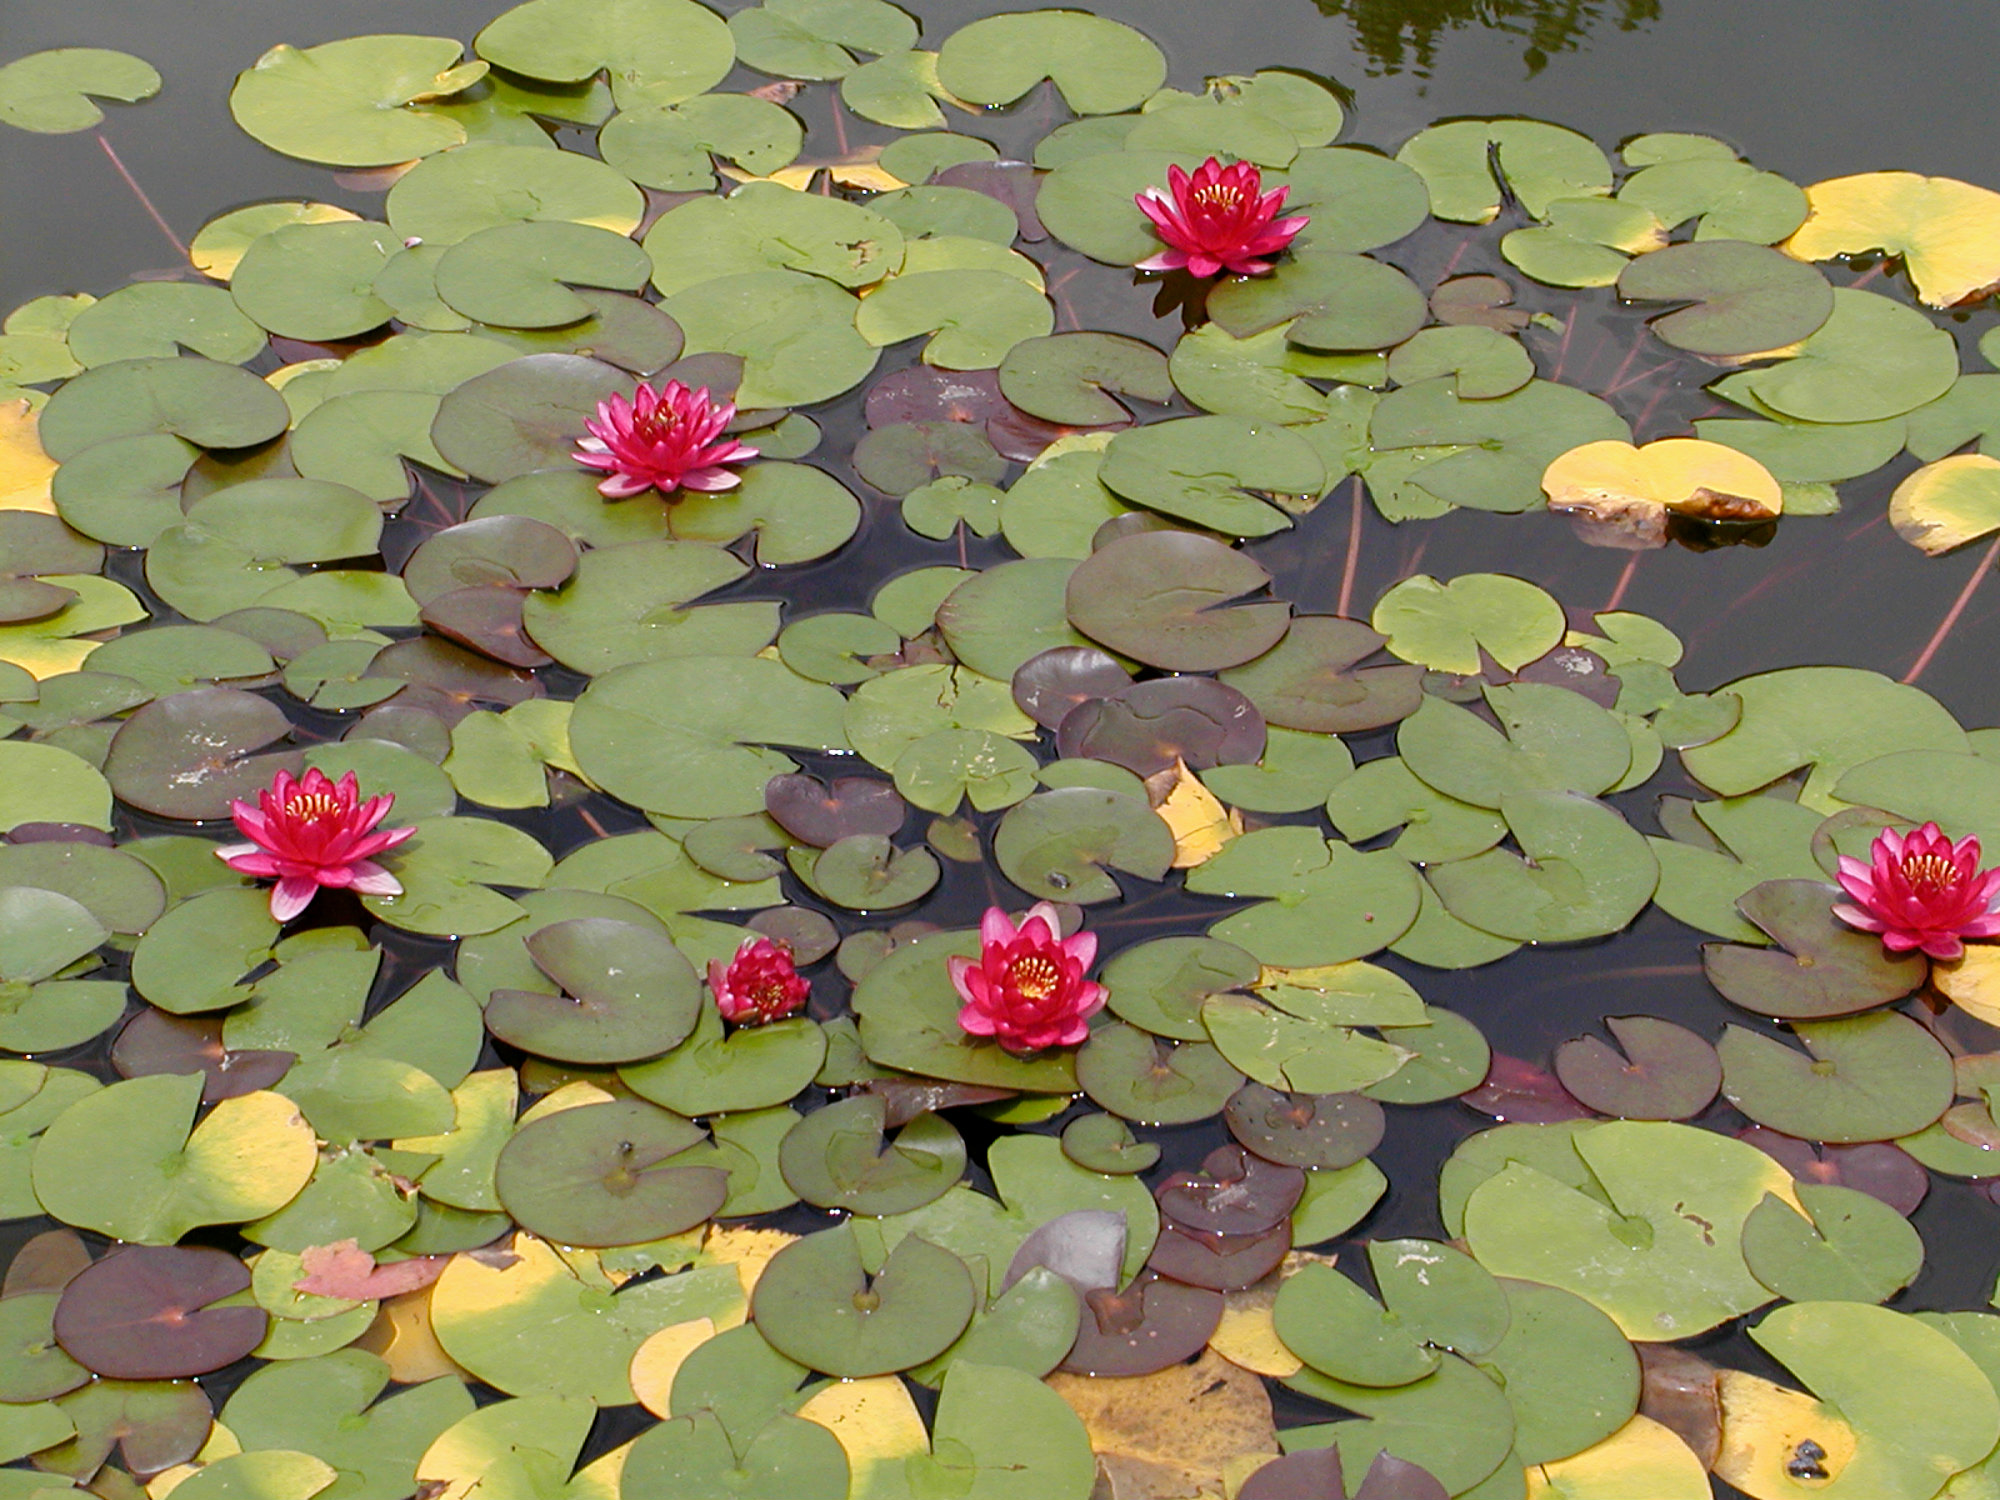 Biltmore Italian Garden Pink Lily Pad Flowers August 2011